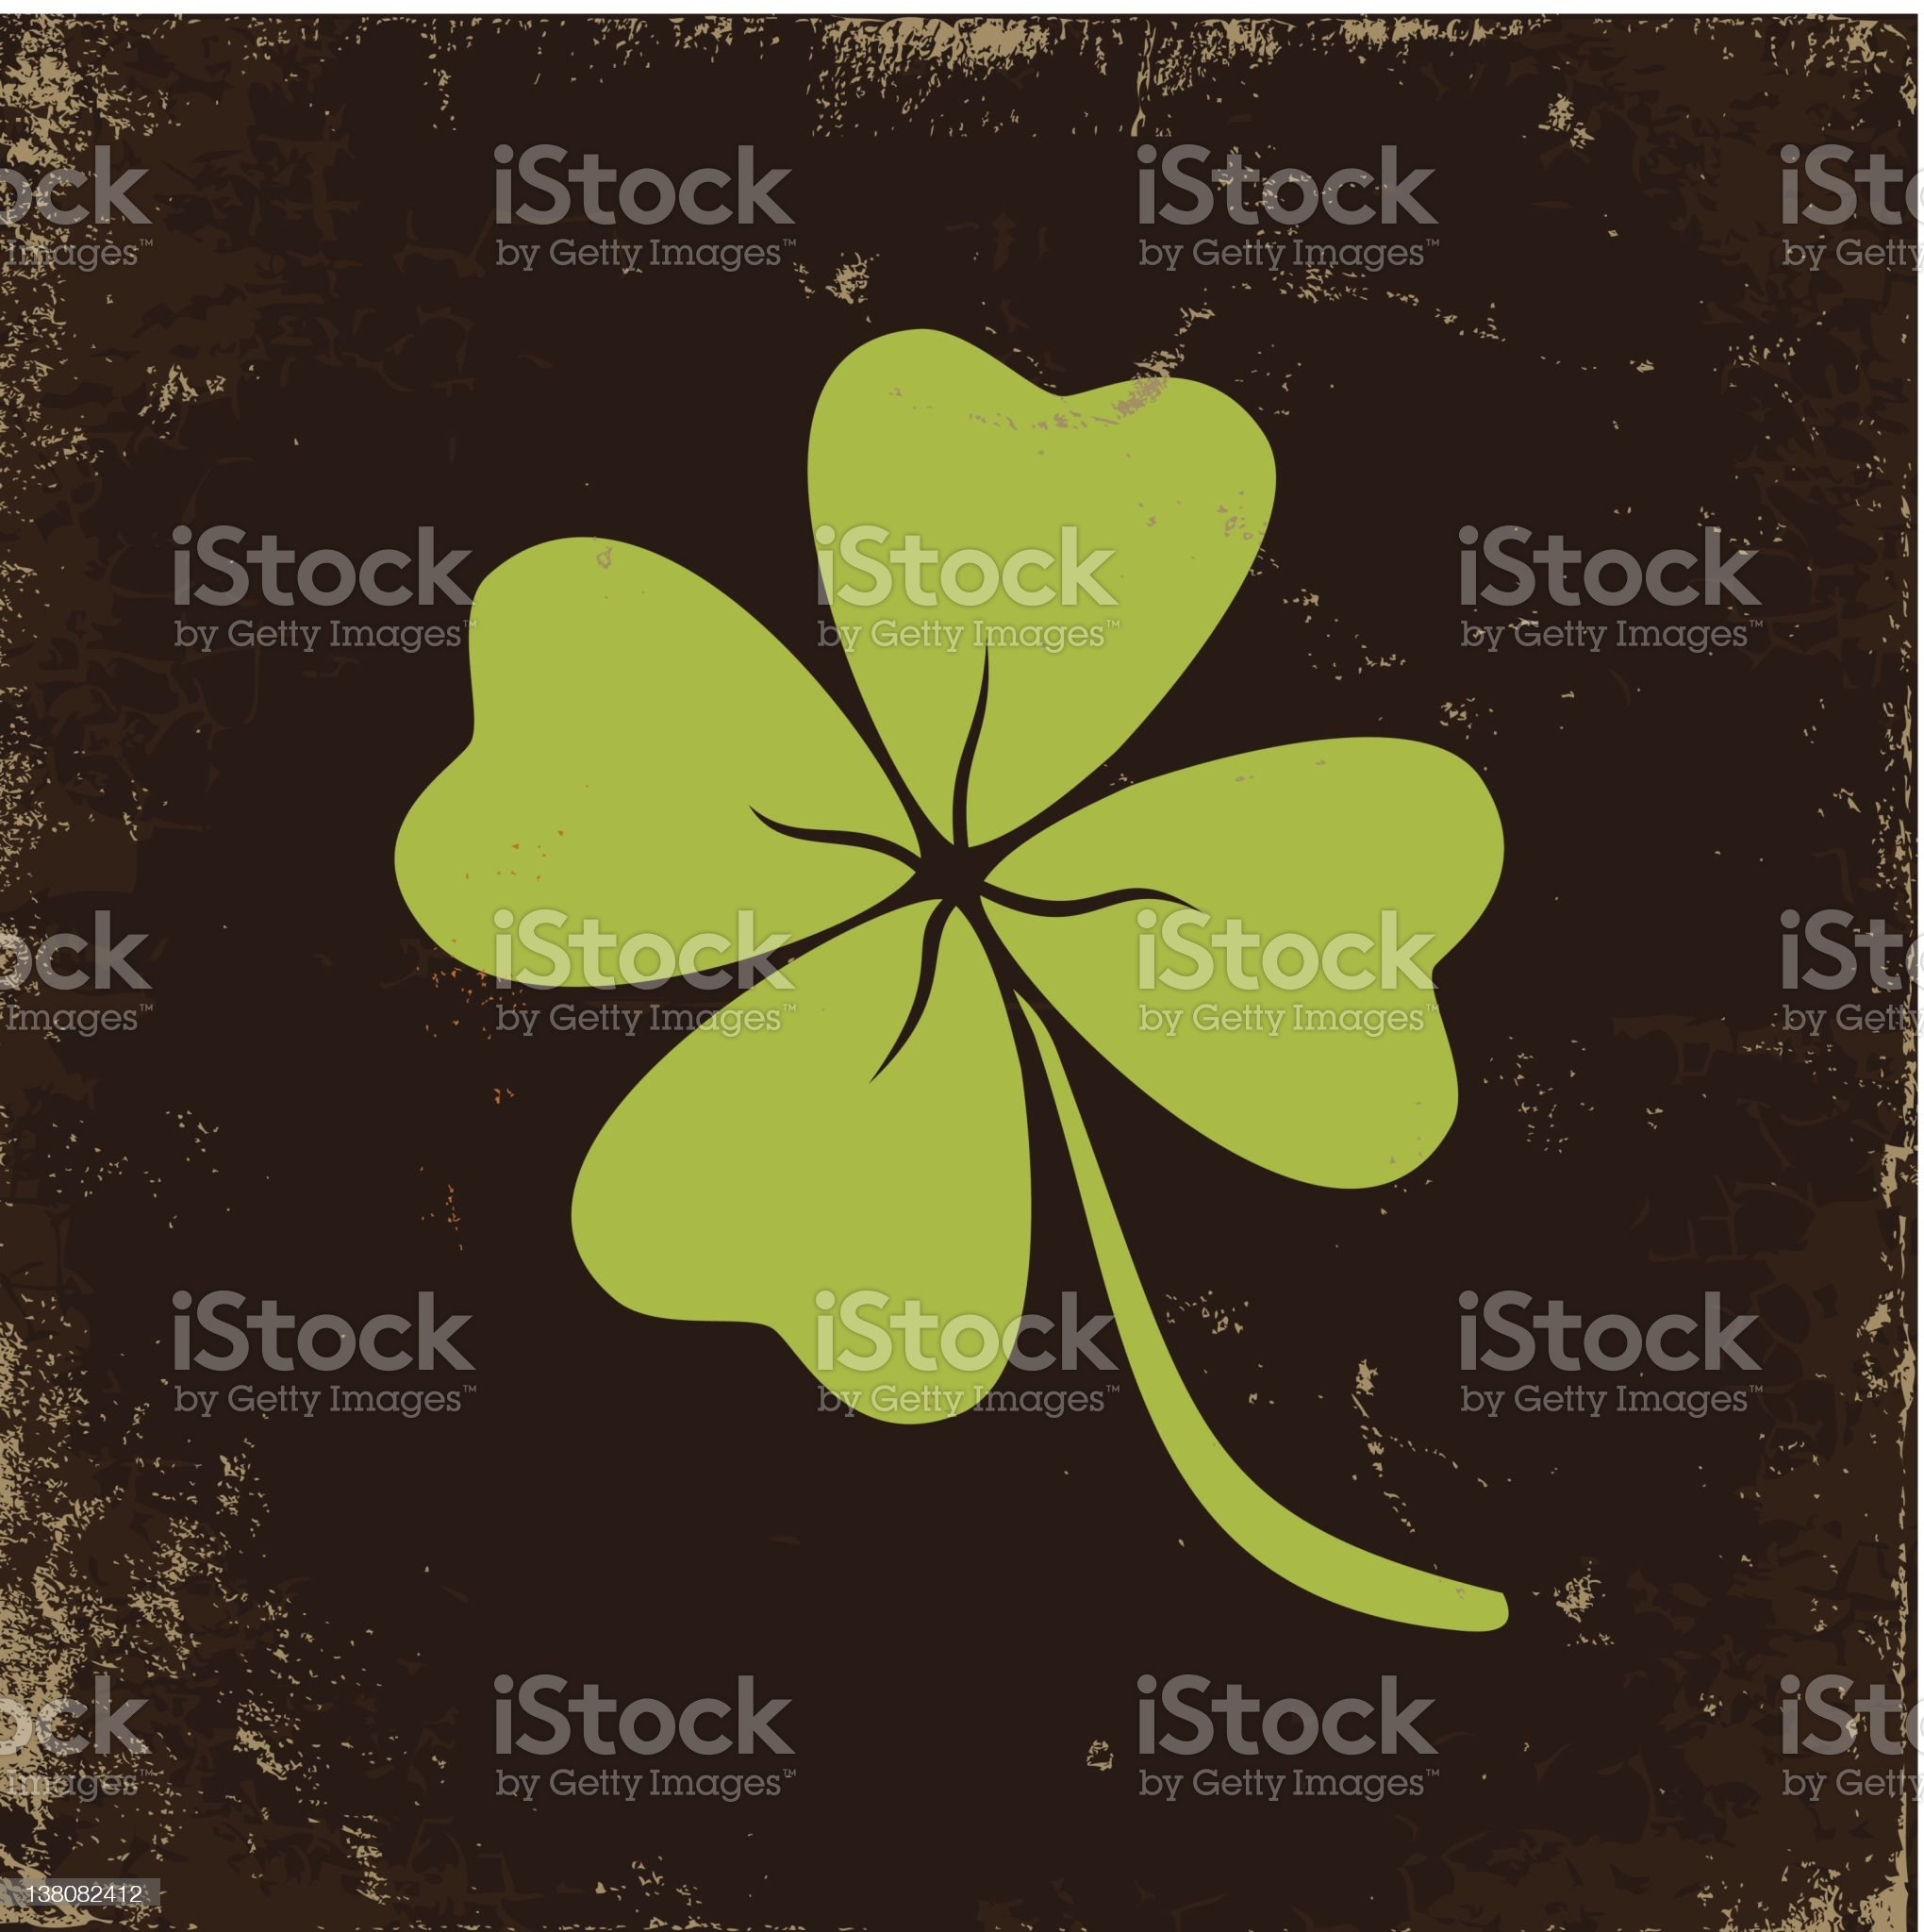 Clover with four leaves royalty-free stock vector art